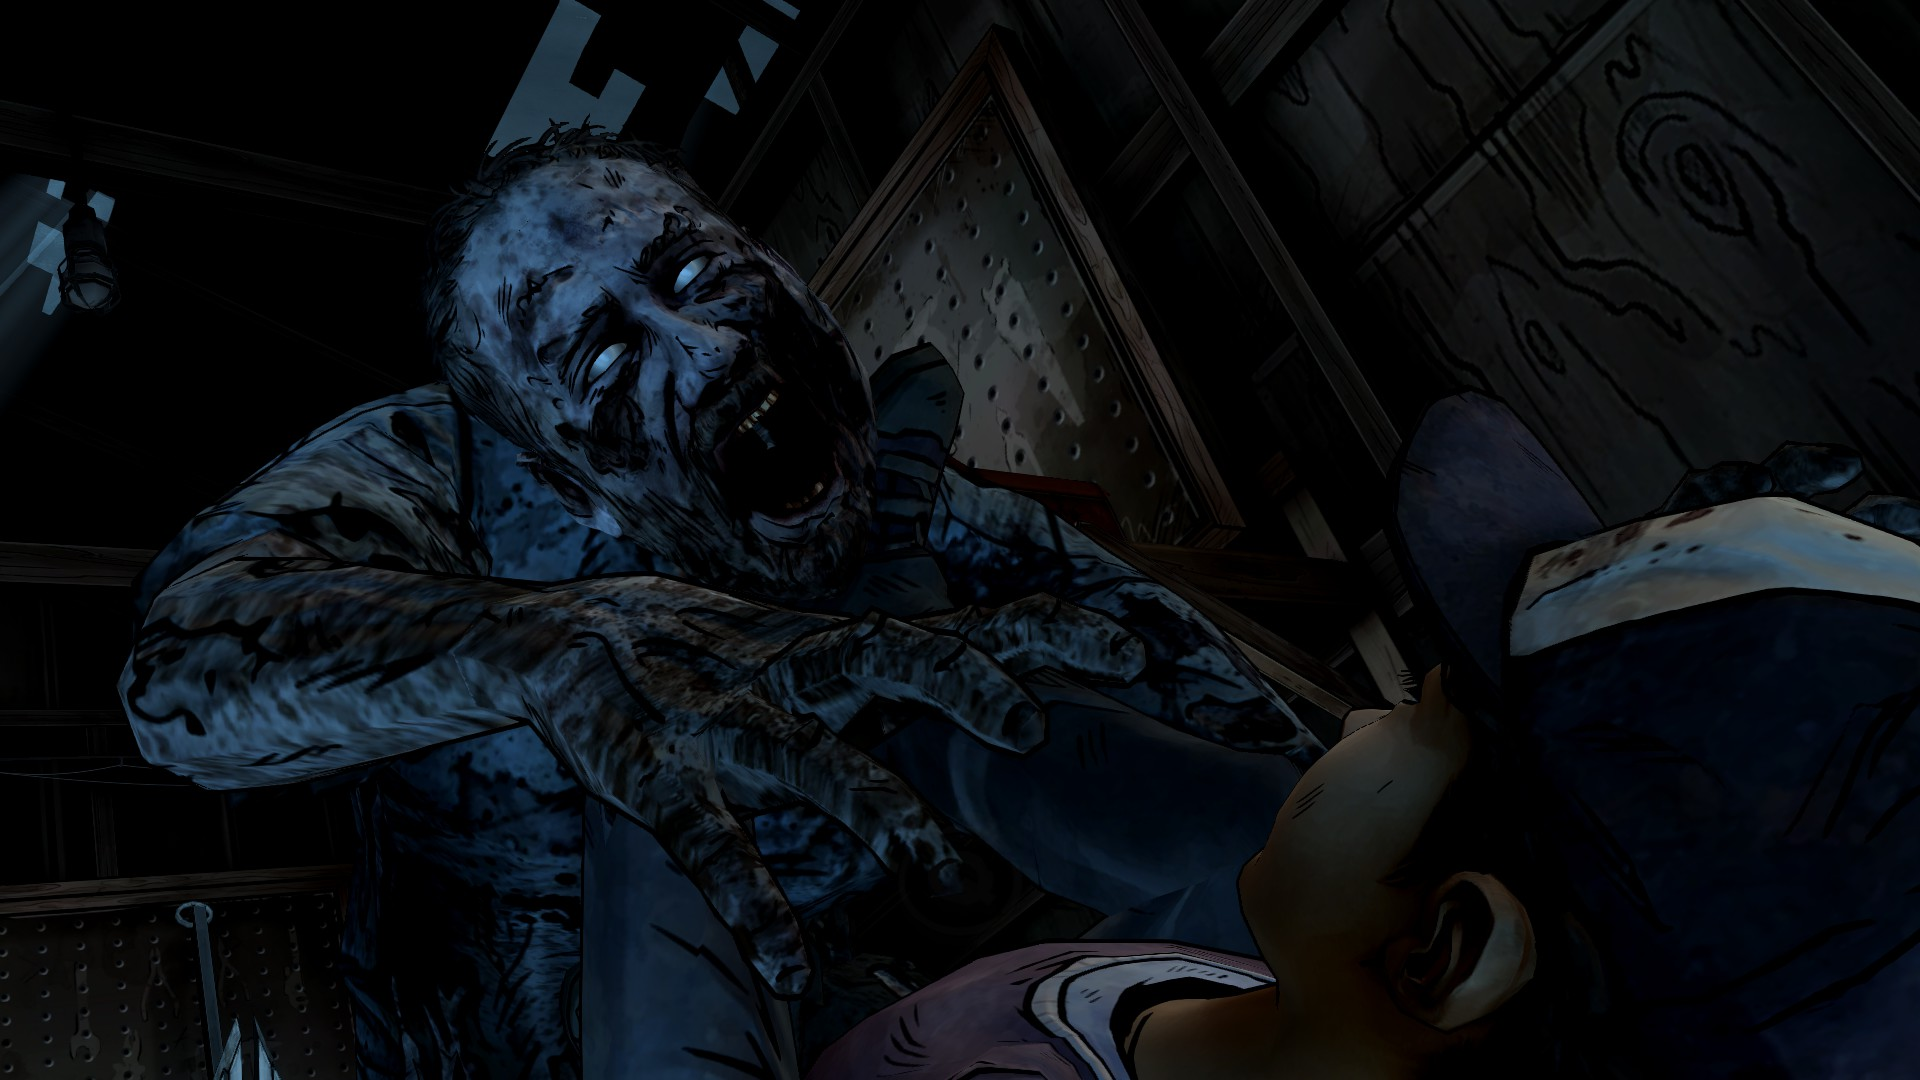 REVIEW: The Walking Dead Season 2 - All That Remains ...